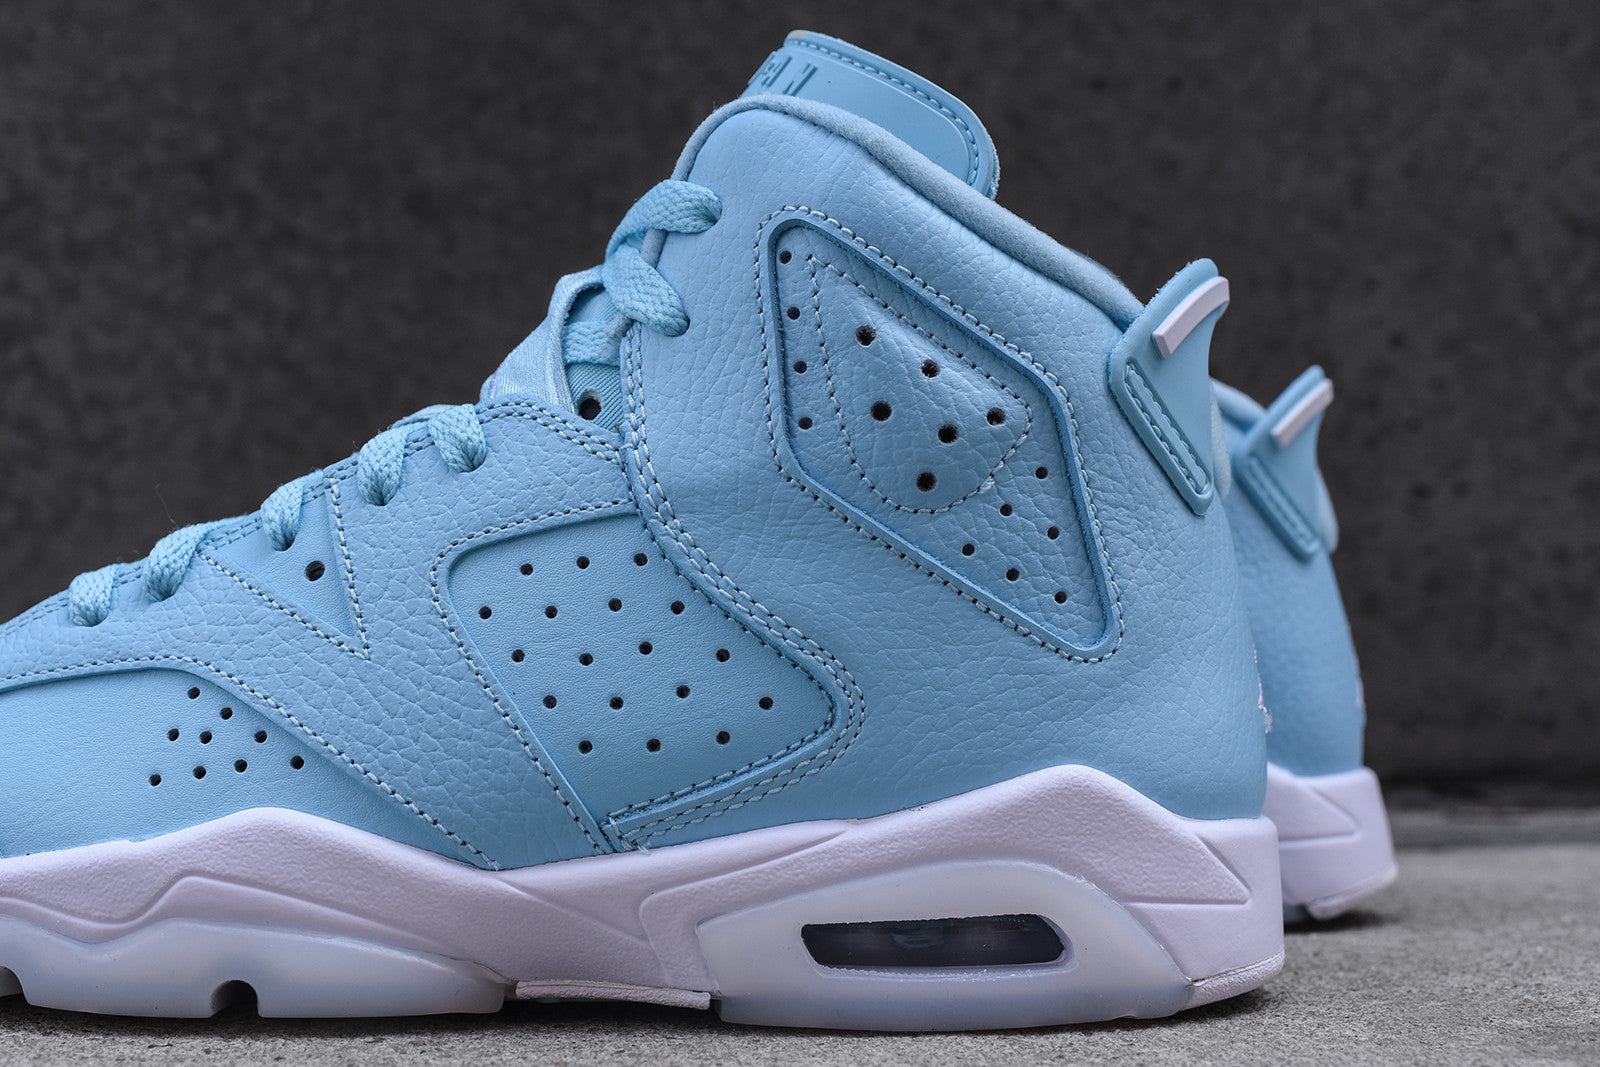 sale retailer d0226 20fa2 Nike GS Air Jordan Retro 6 - Still Blue / White – Kith